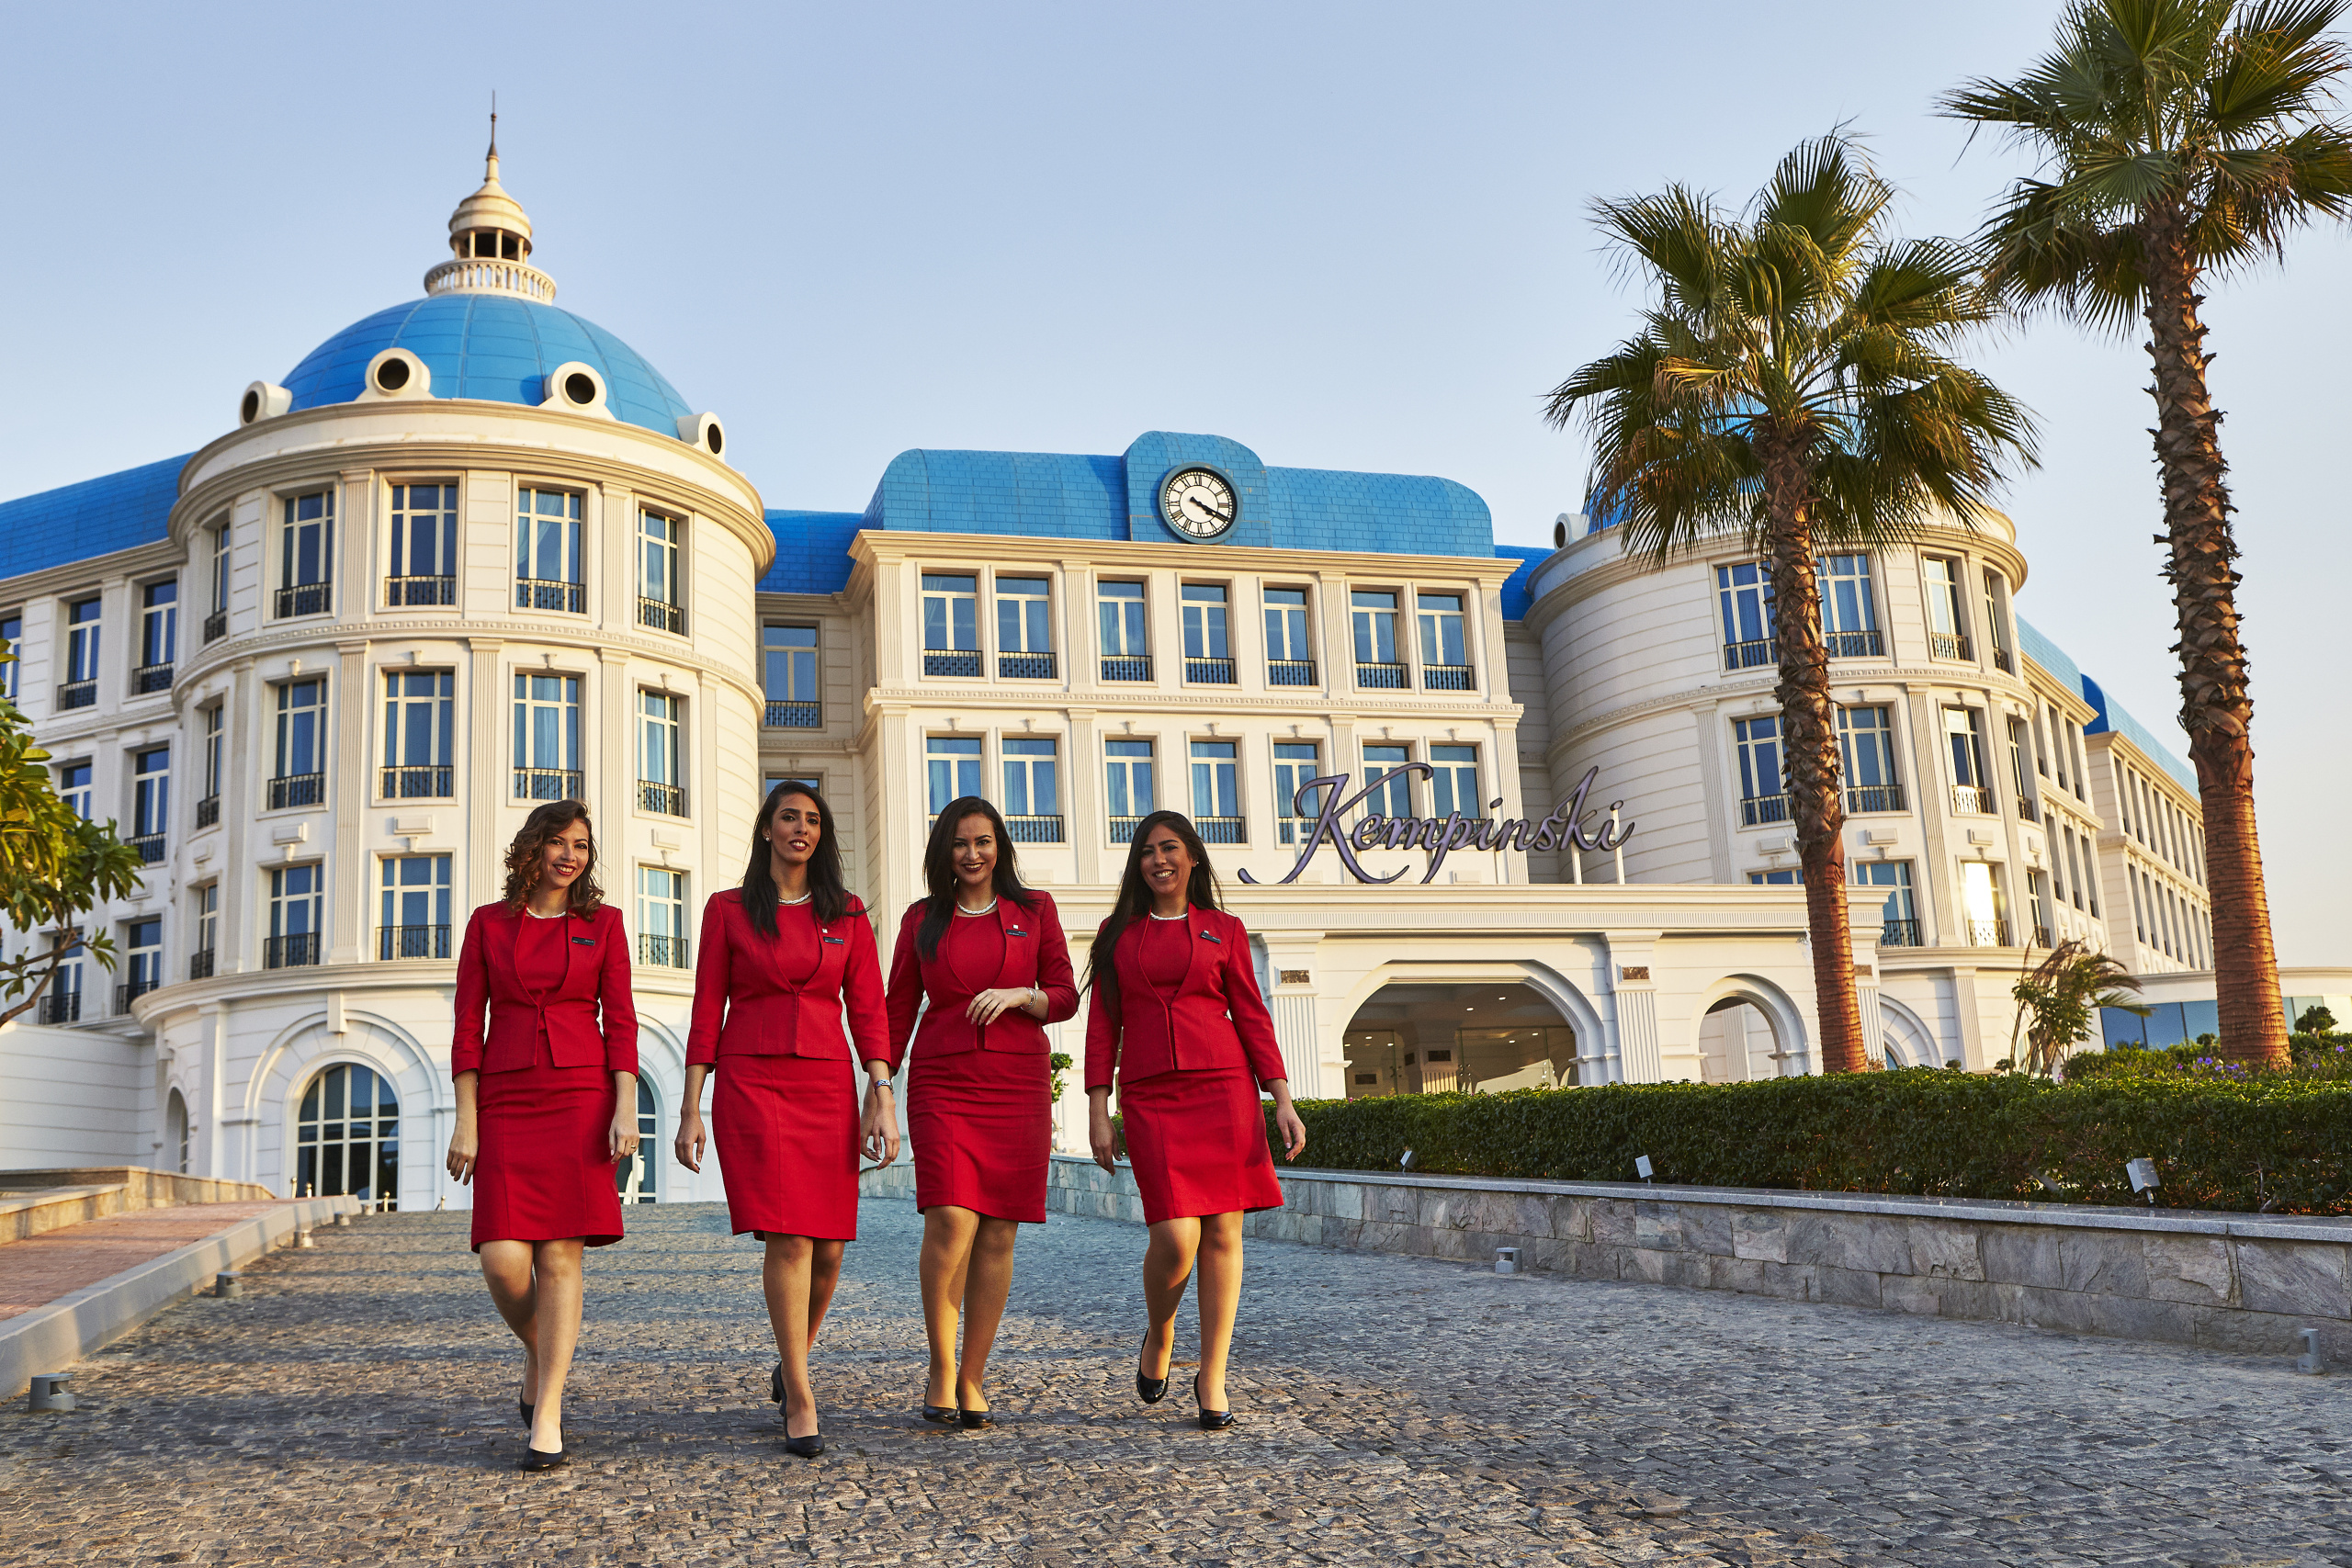 kempinski_lady_in_red